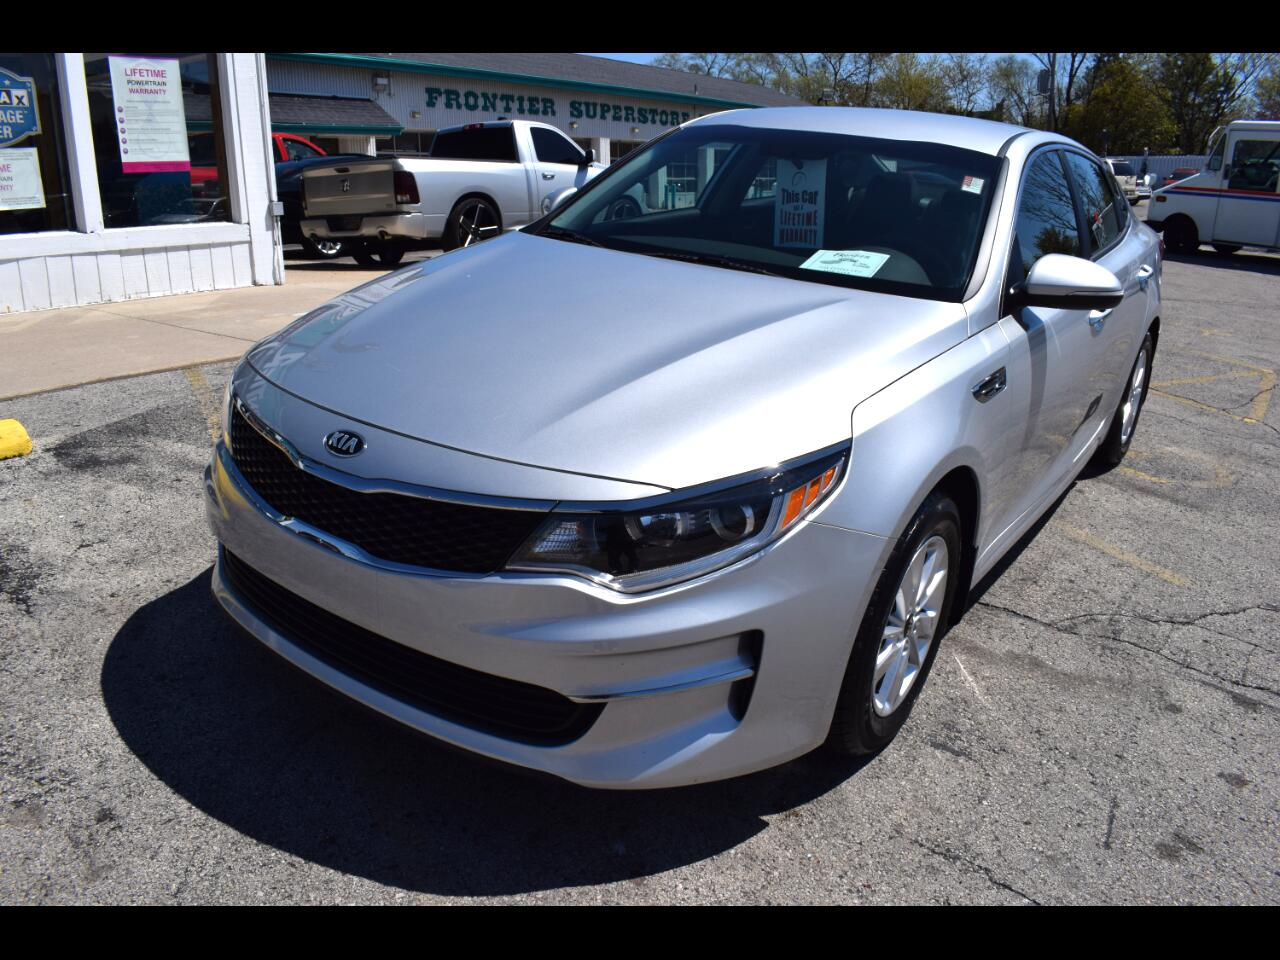 Kia Optima 4dr Sdn LX 2016